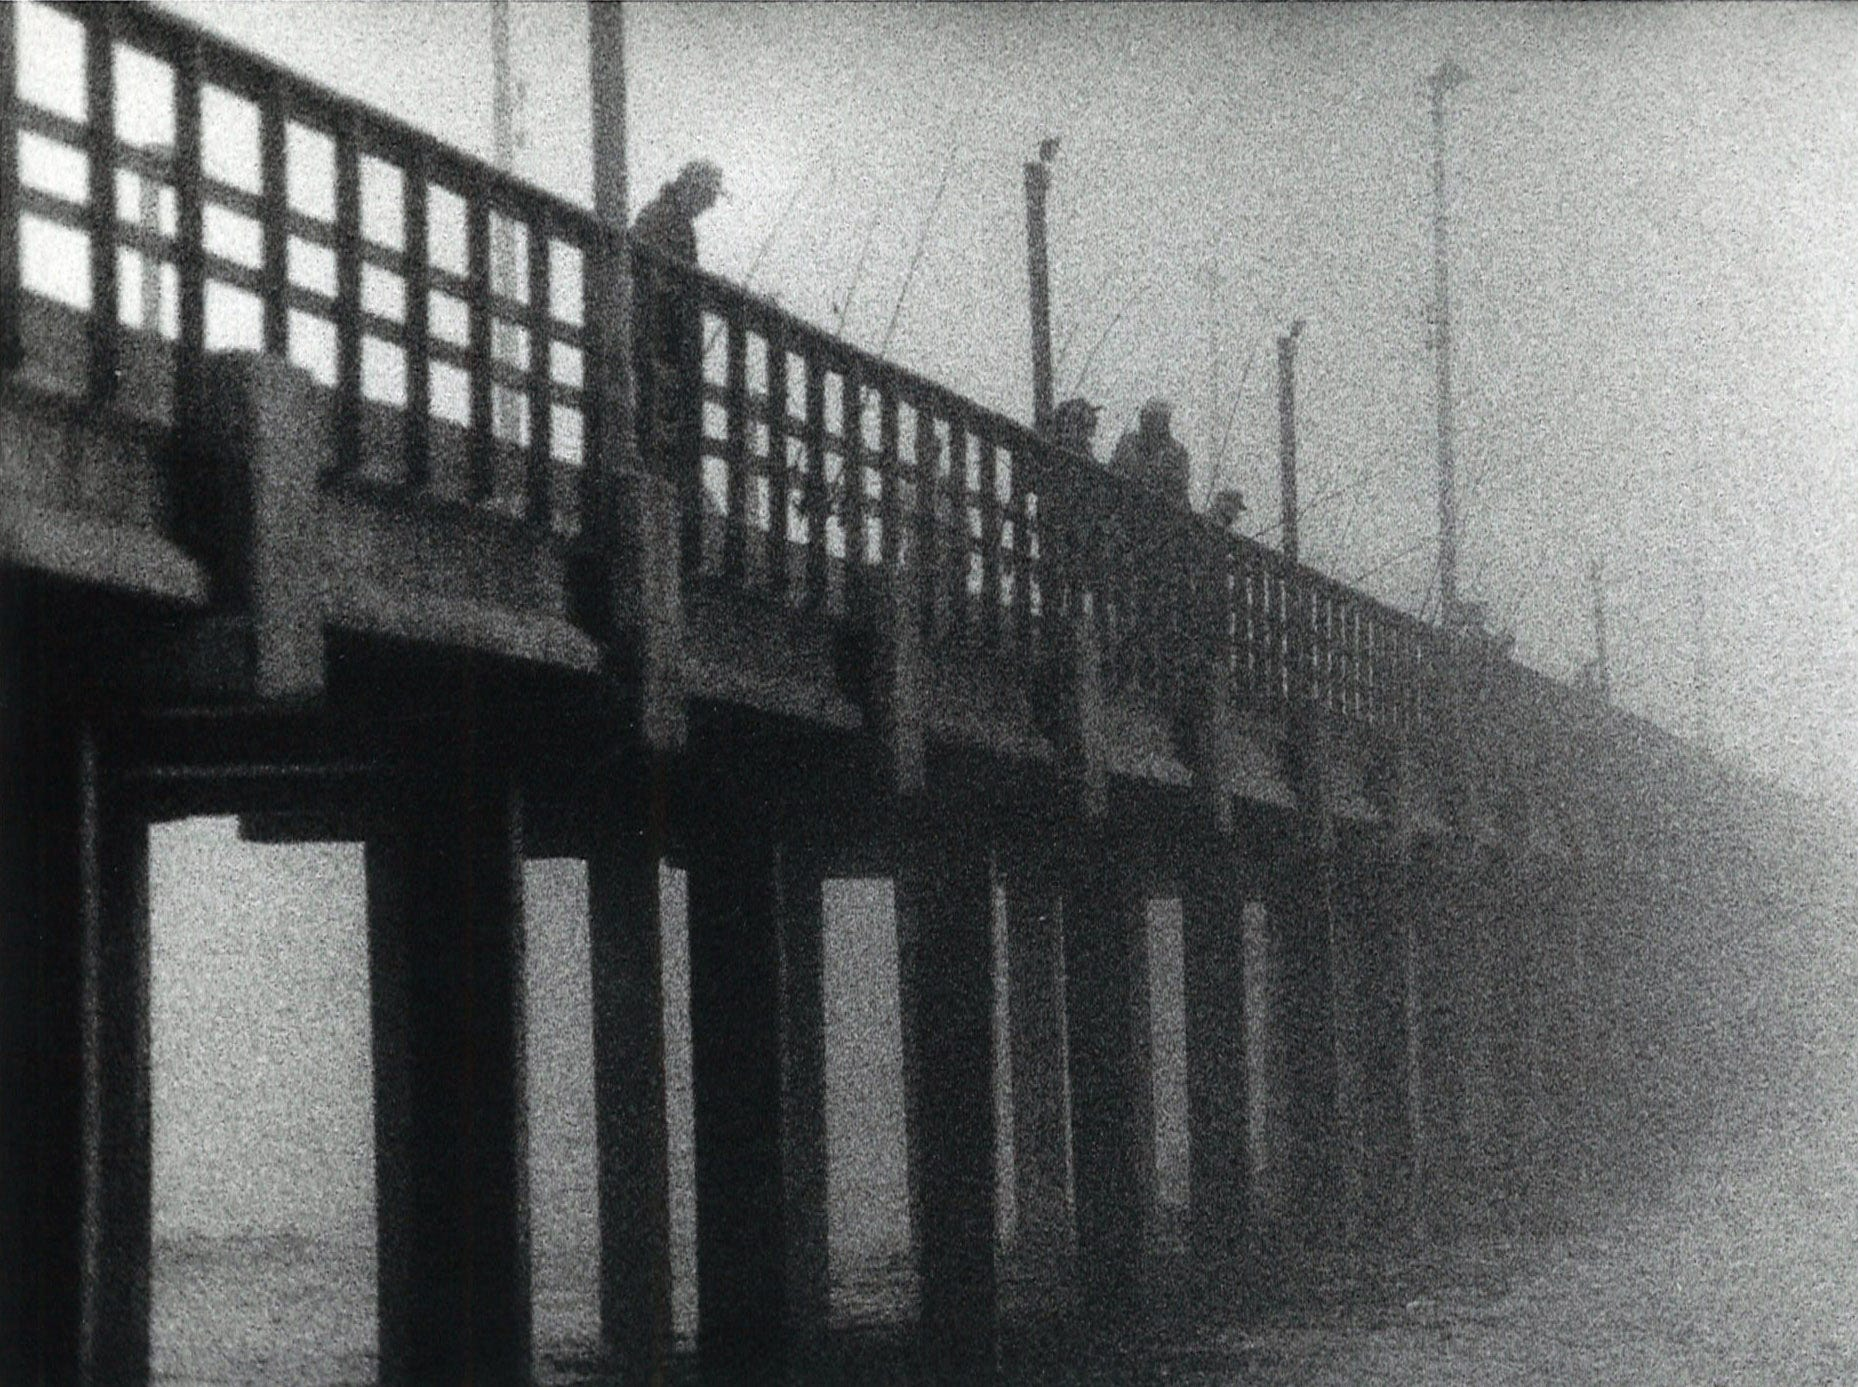 Fishermen try their luck on a foggy Bob Hall Pier on Jan. 23, 1990 in Corpus Christi.